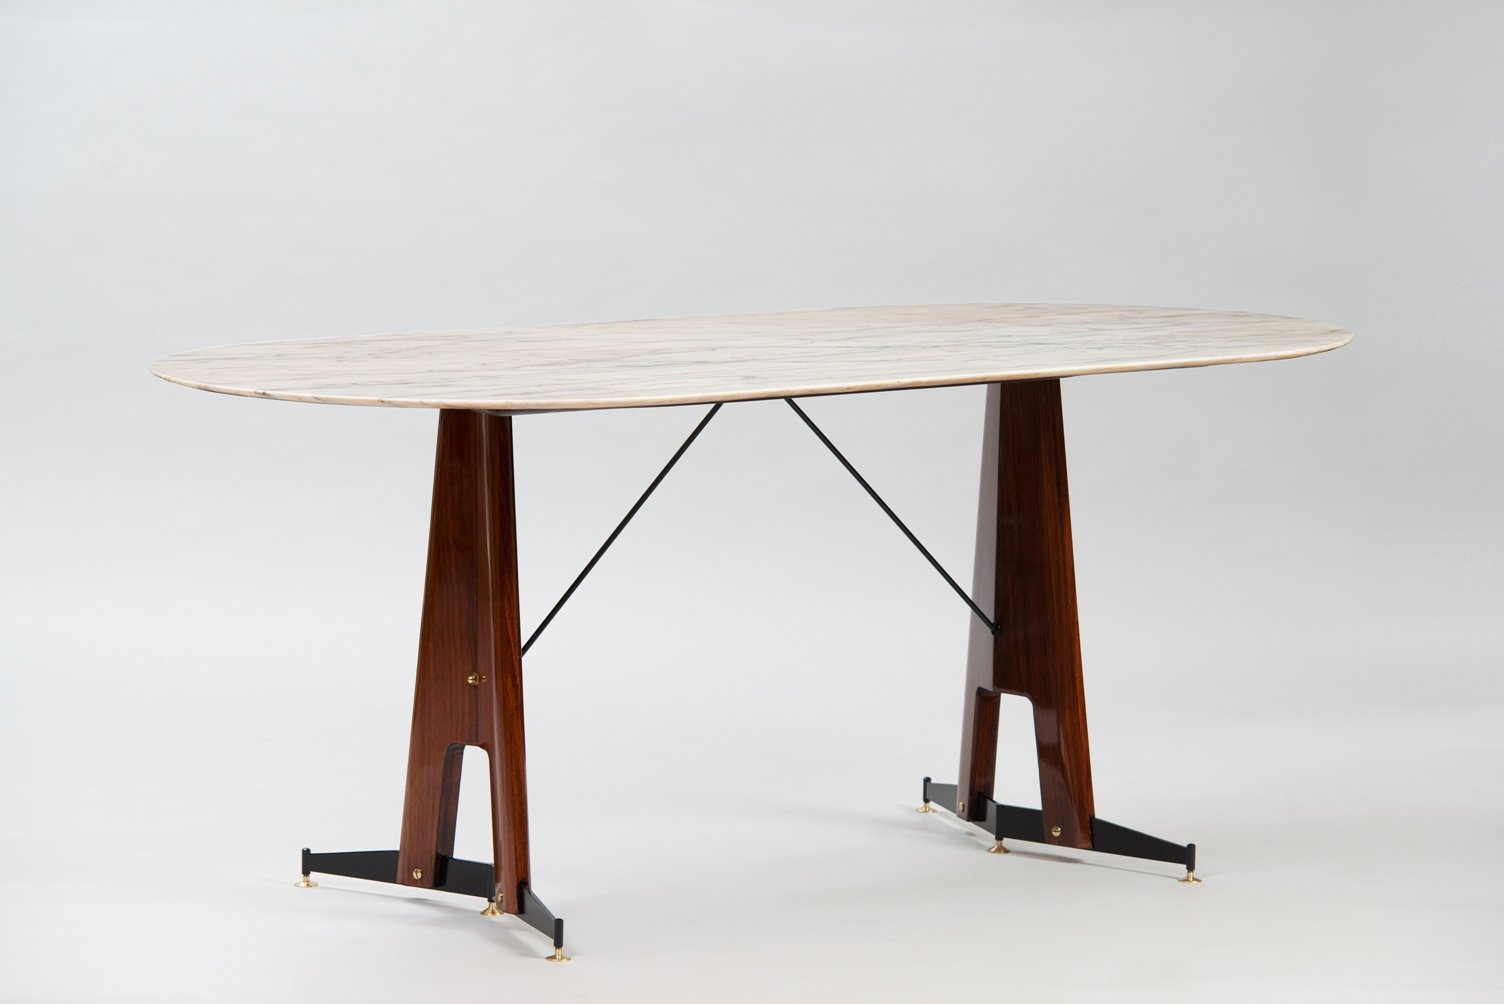 Table salle a manger marbre design for Table salle a manger design xxl